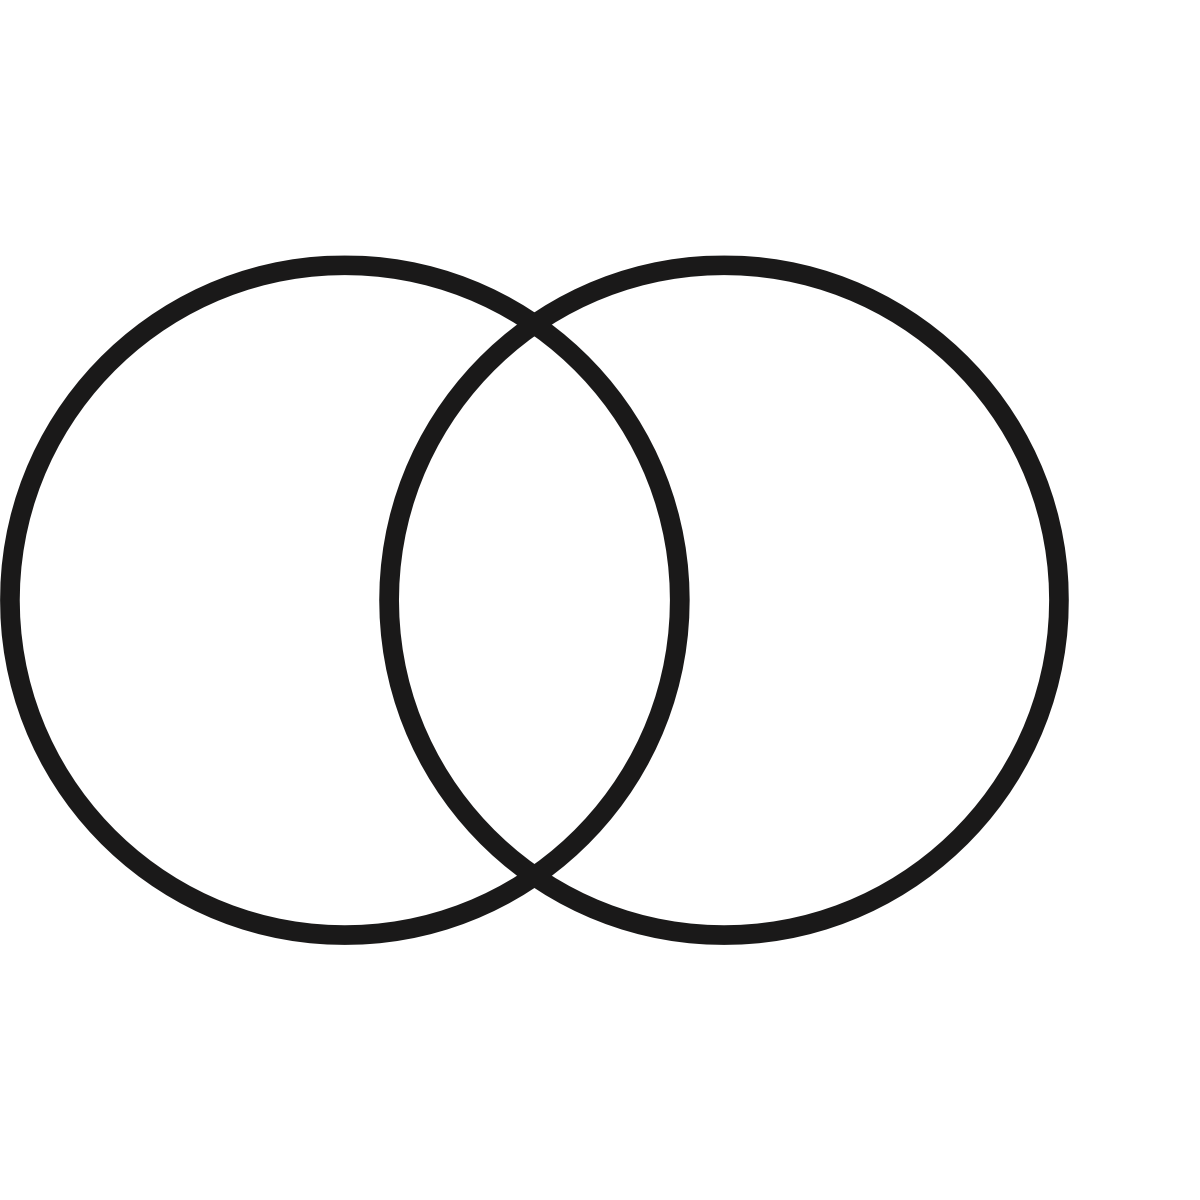 A black line drawing of two black concentric circles that represent an integrated design process.